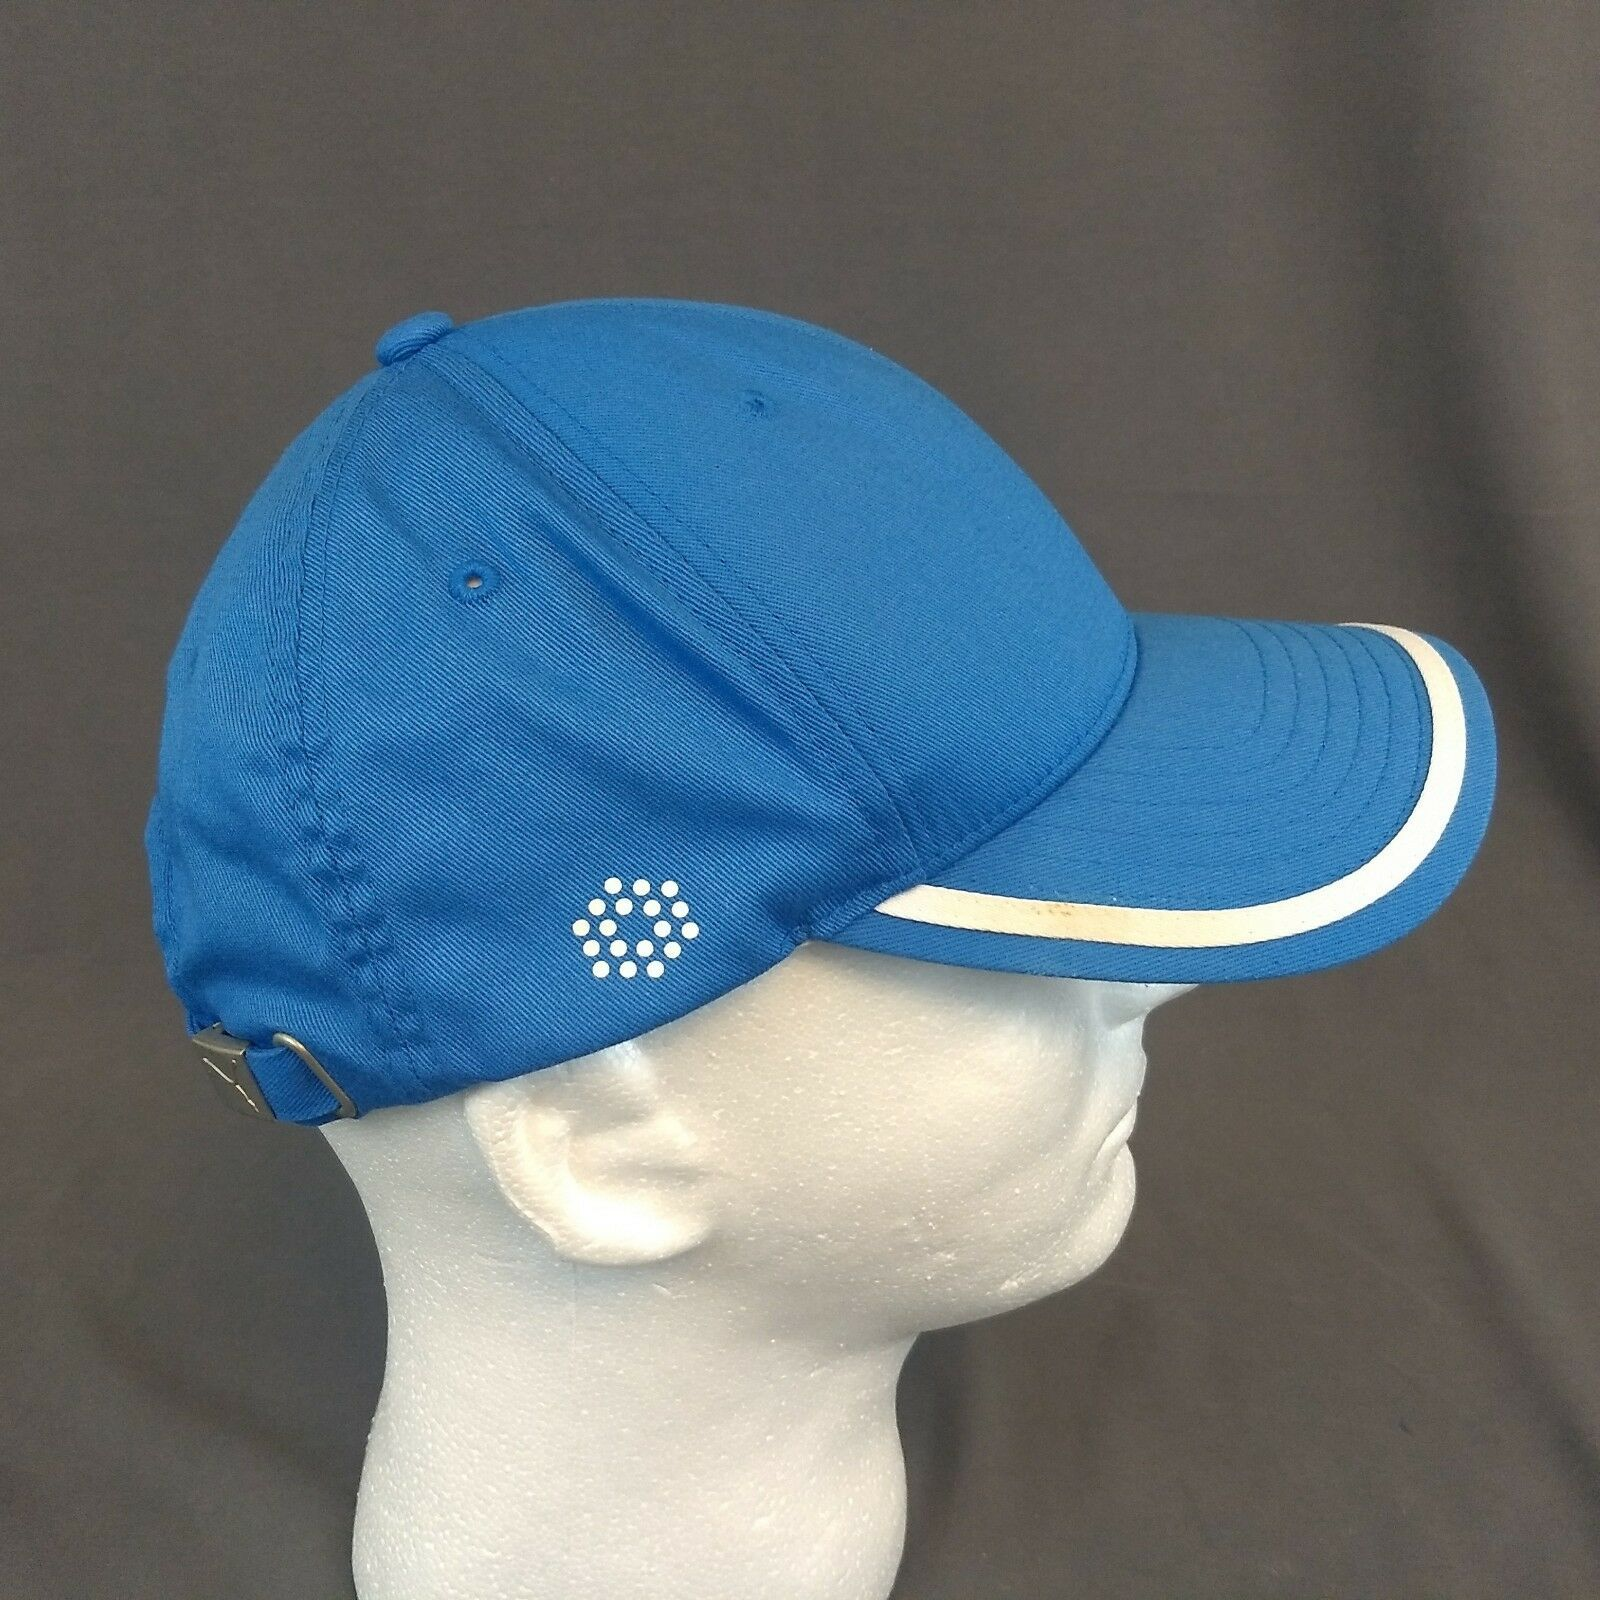 Puma Blue StrapBack Hat Golf Baseball Hat